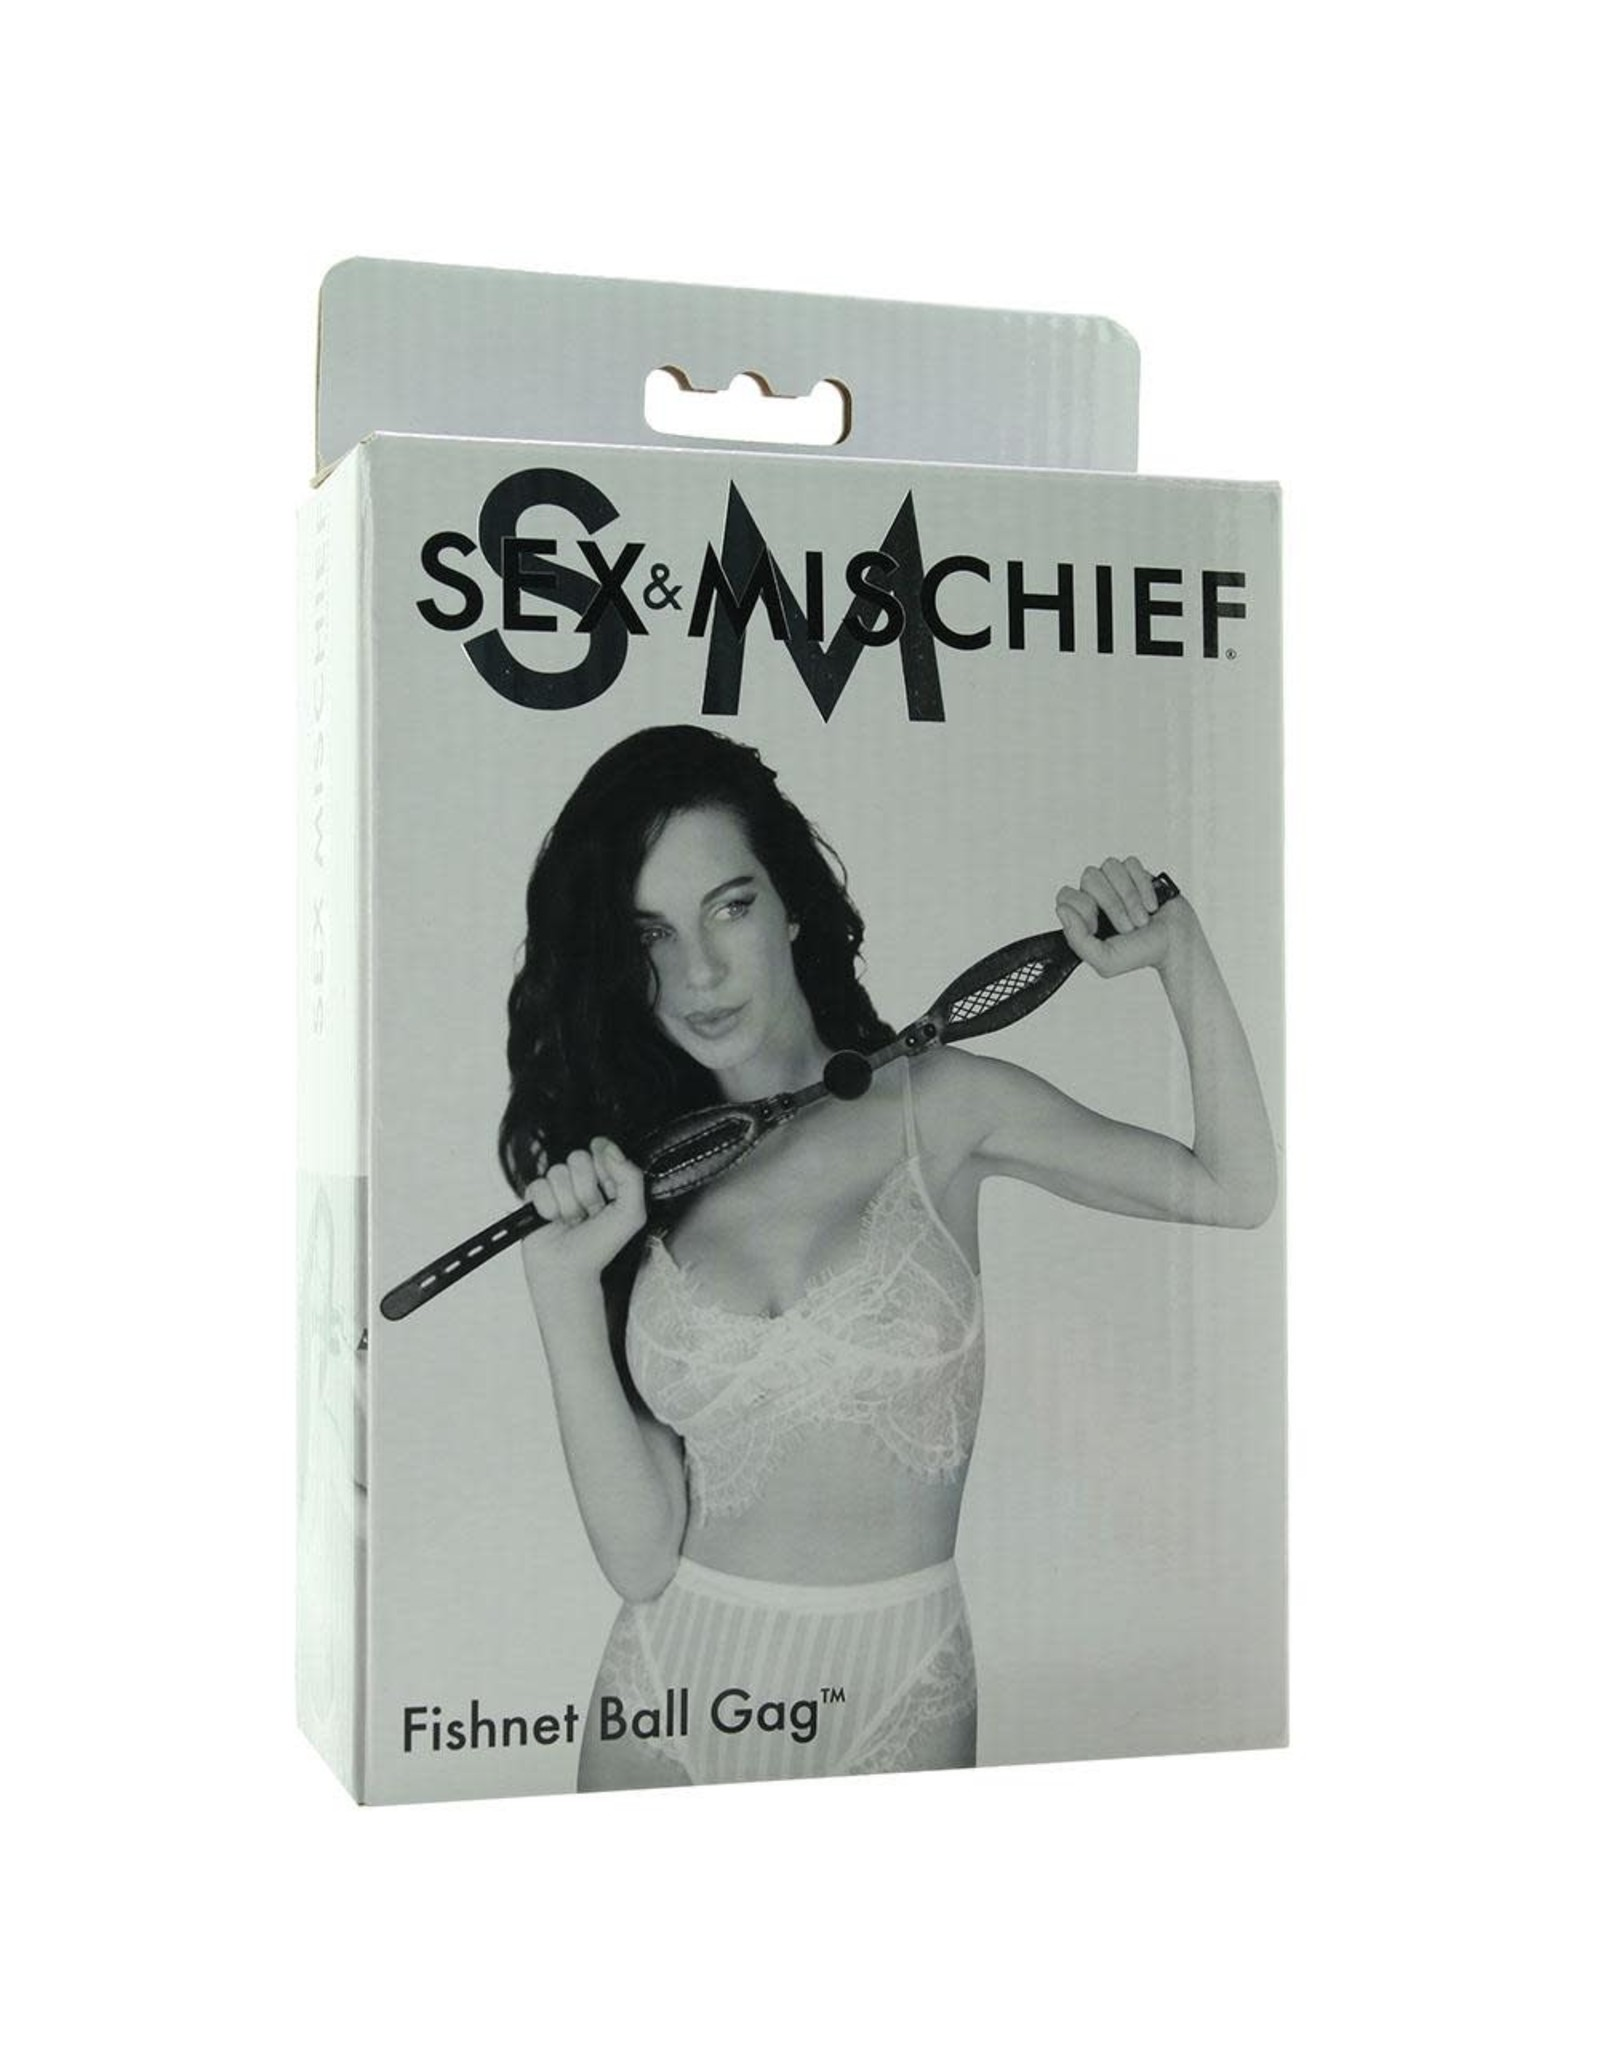 SEX & MISCHIEF SPORTSHEETS - S&M - FISHNET BALL GAG